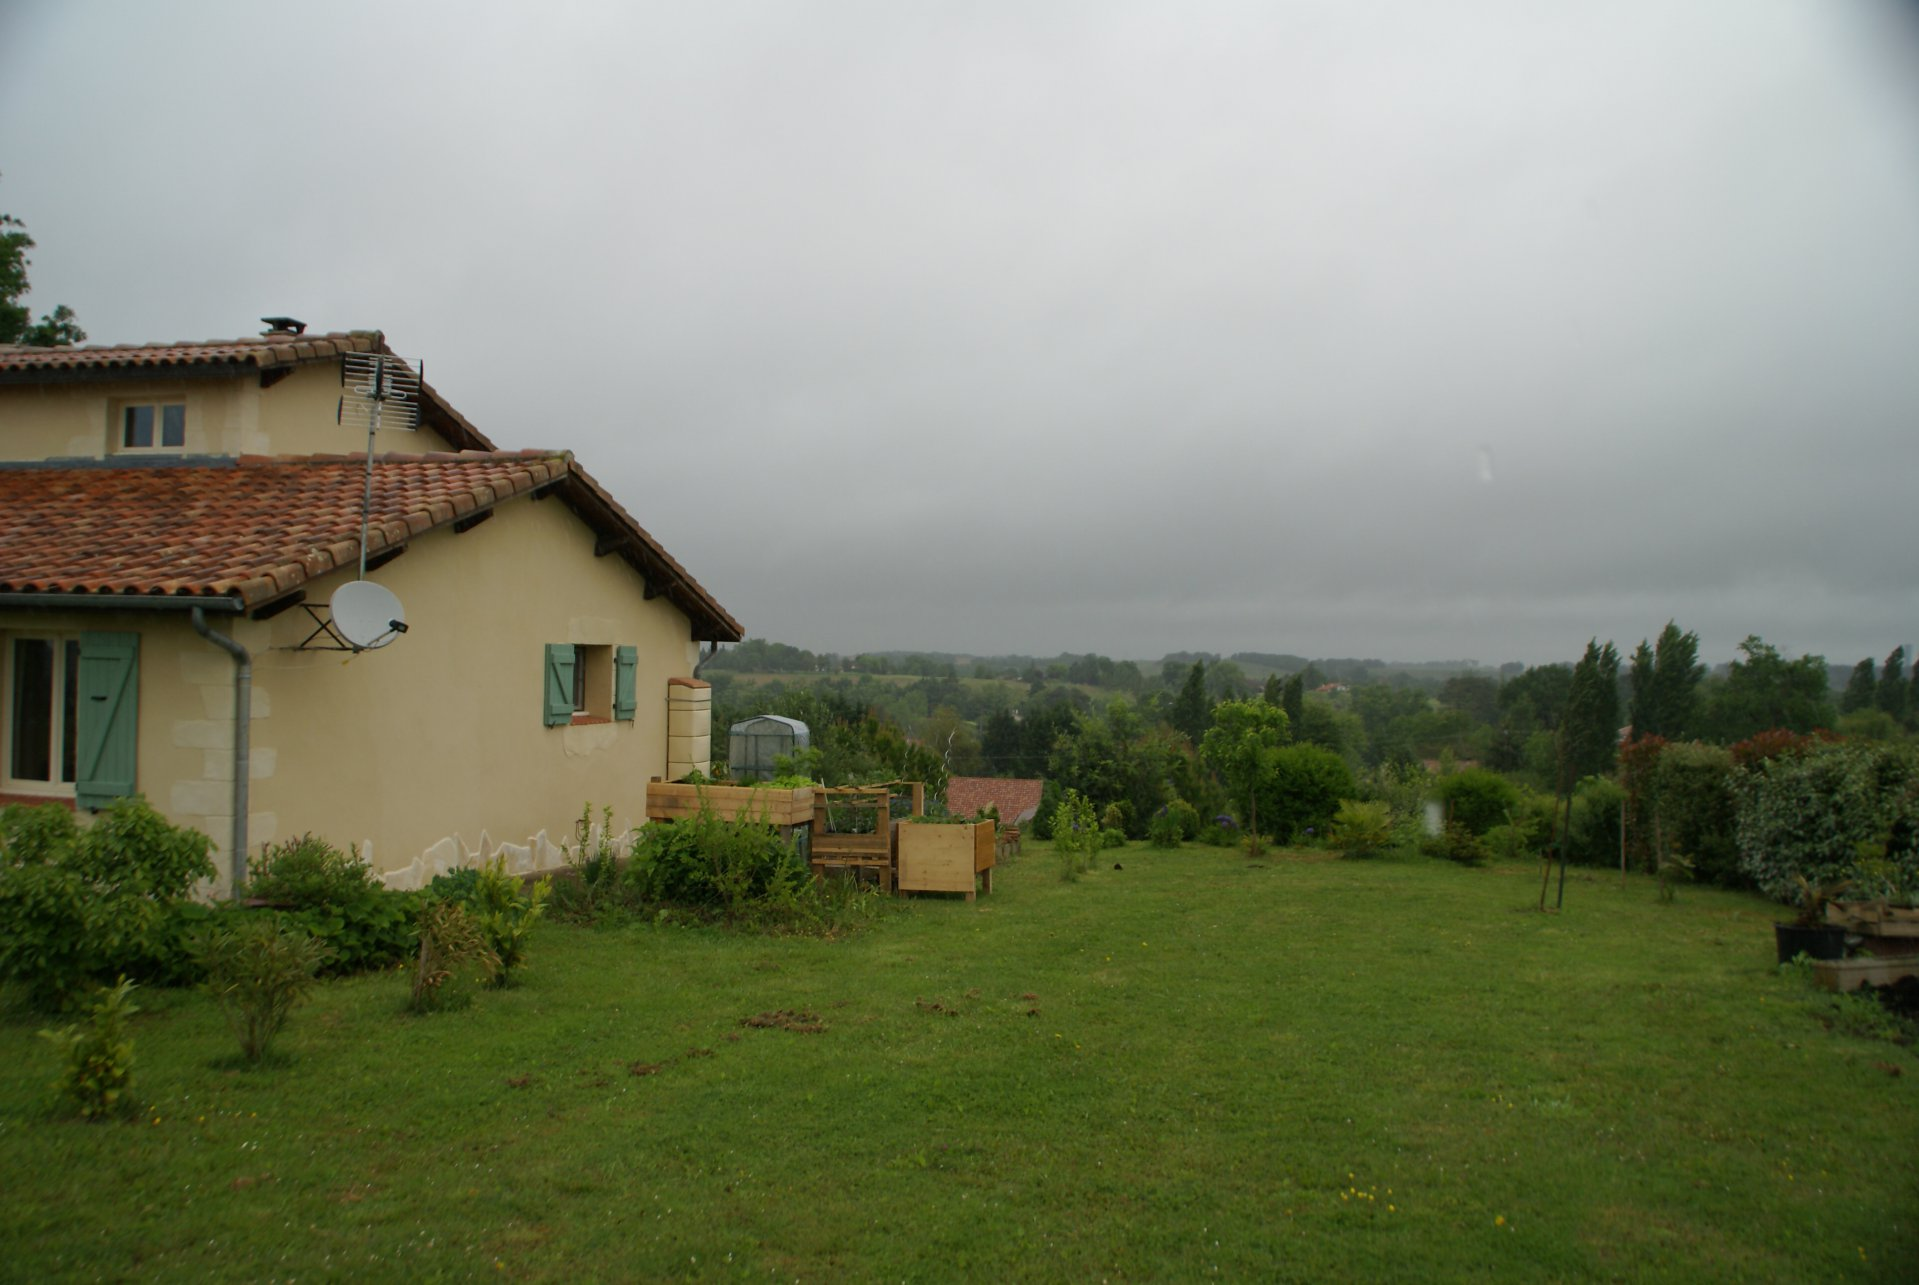 Beautiful Villa on the edge of Manciet in the Gers with panoramic views.